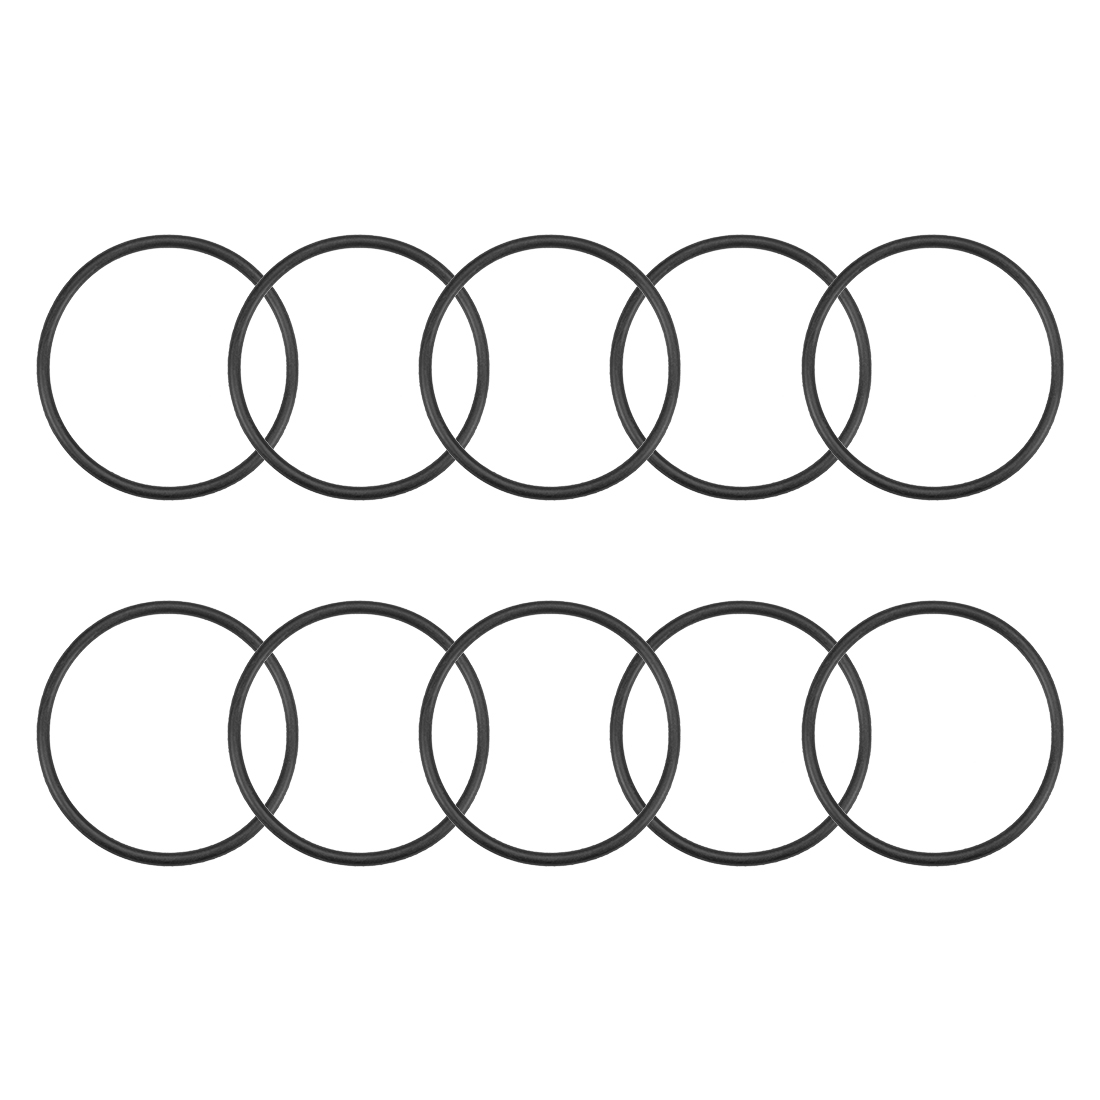 O-Rings Nitrile Rubber 46.2mm x 51.5mm x 2.65mm Round Seal Gasket 10 Pcs